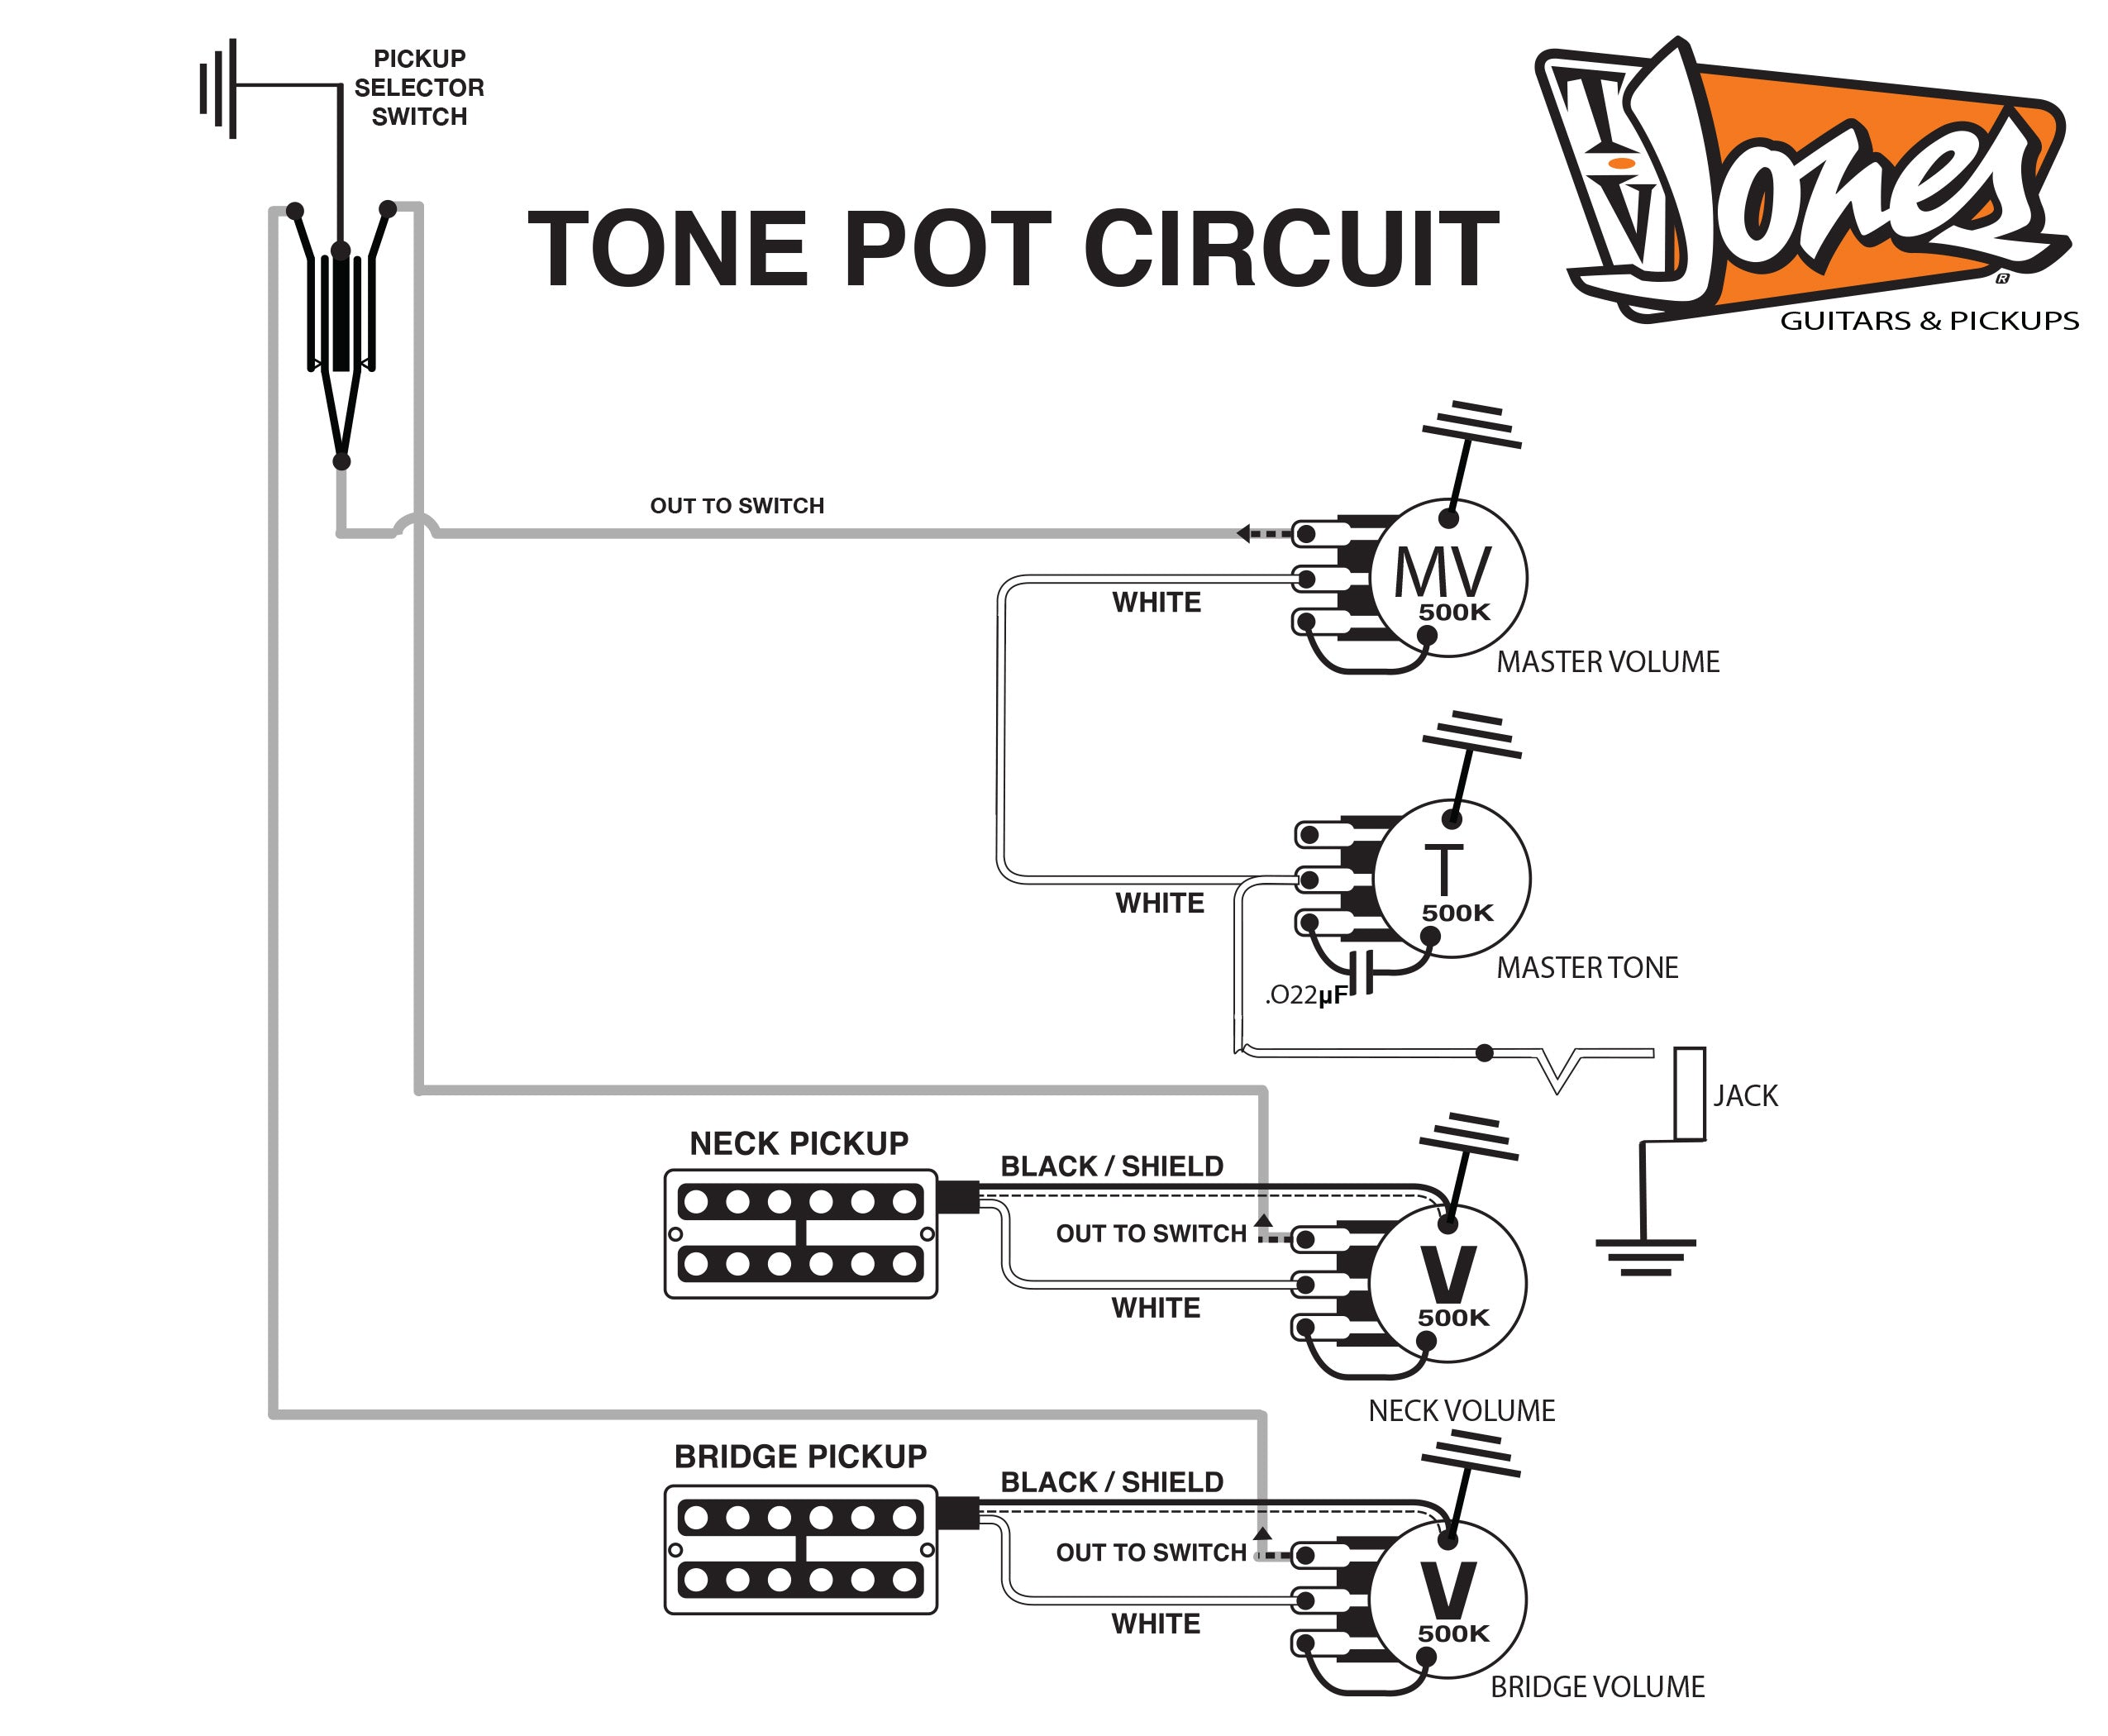 tv jones product dimensions rh tvjones com Gretsch G5120 Electromatic Wiring Gretsch Wiring Schematics